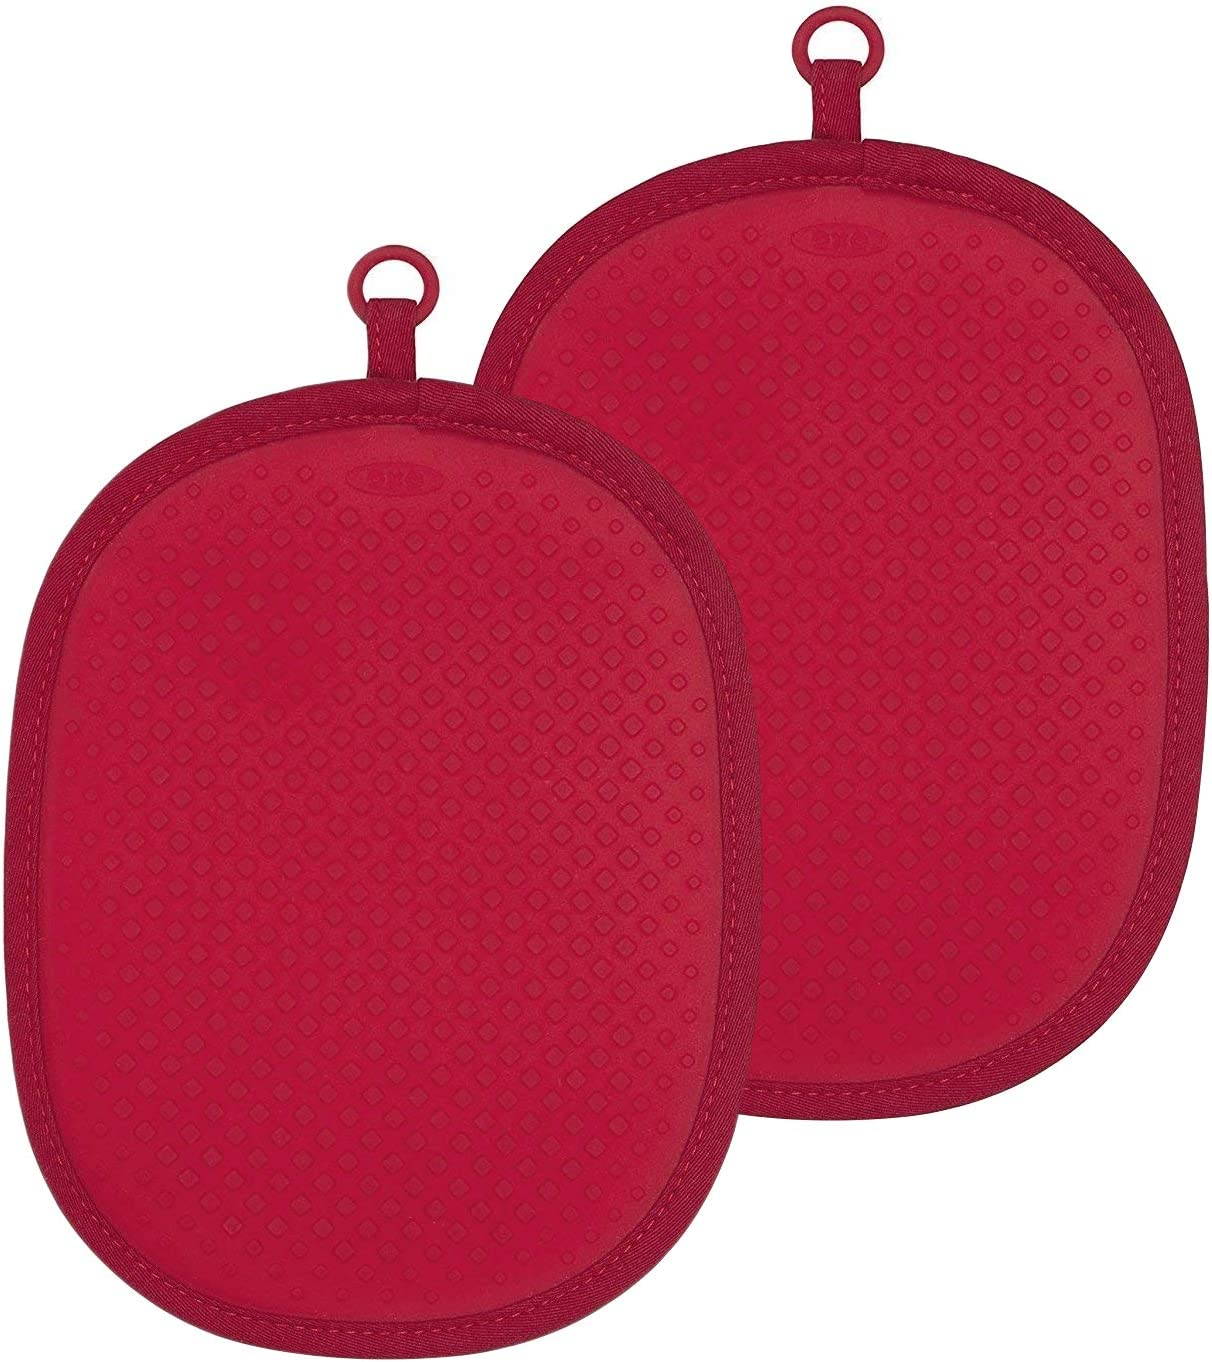 OXO Good Grips Silicone Pot Holder, Red (2 Pack)